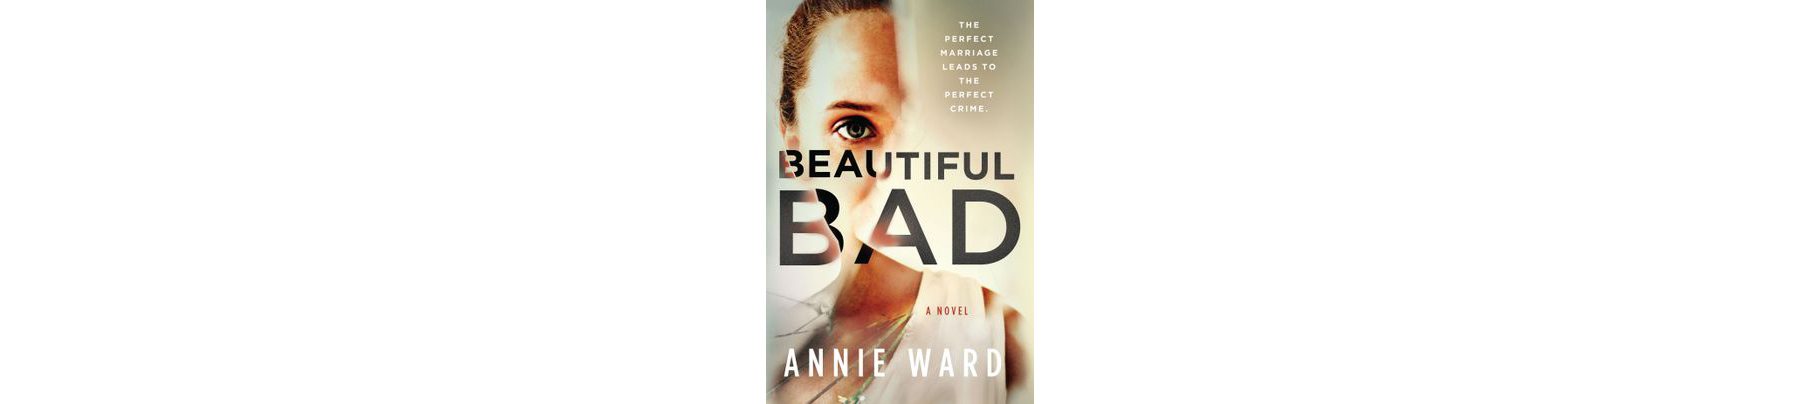 Cover of Beautiful Bad, by Annie Ward